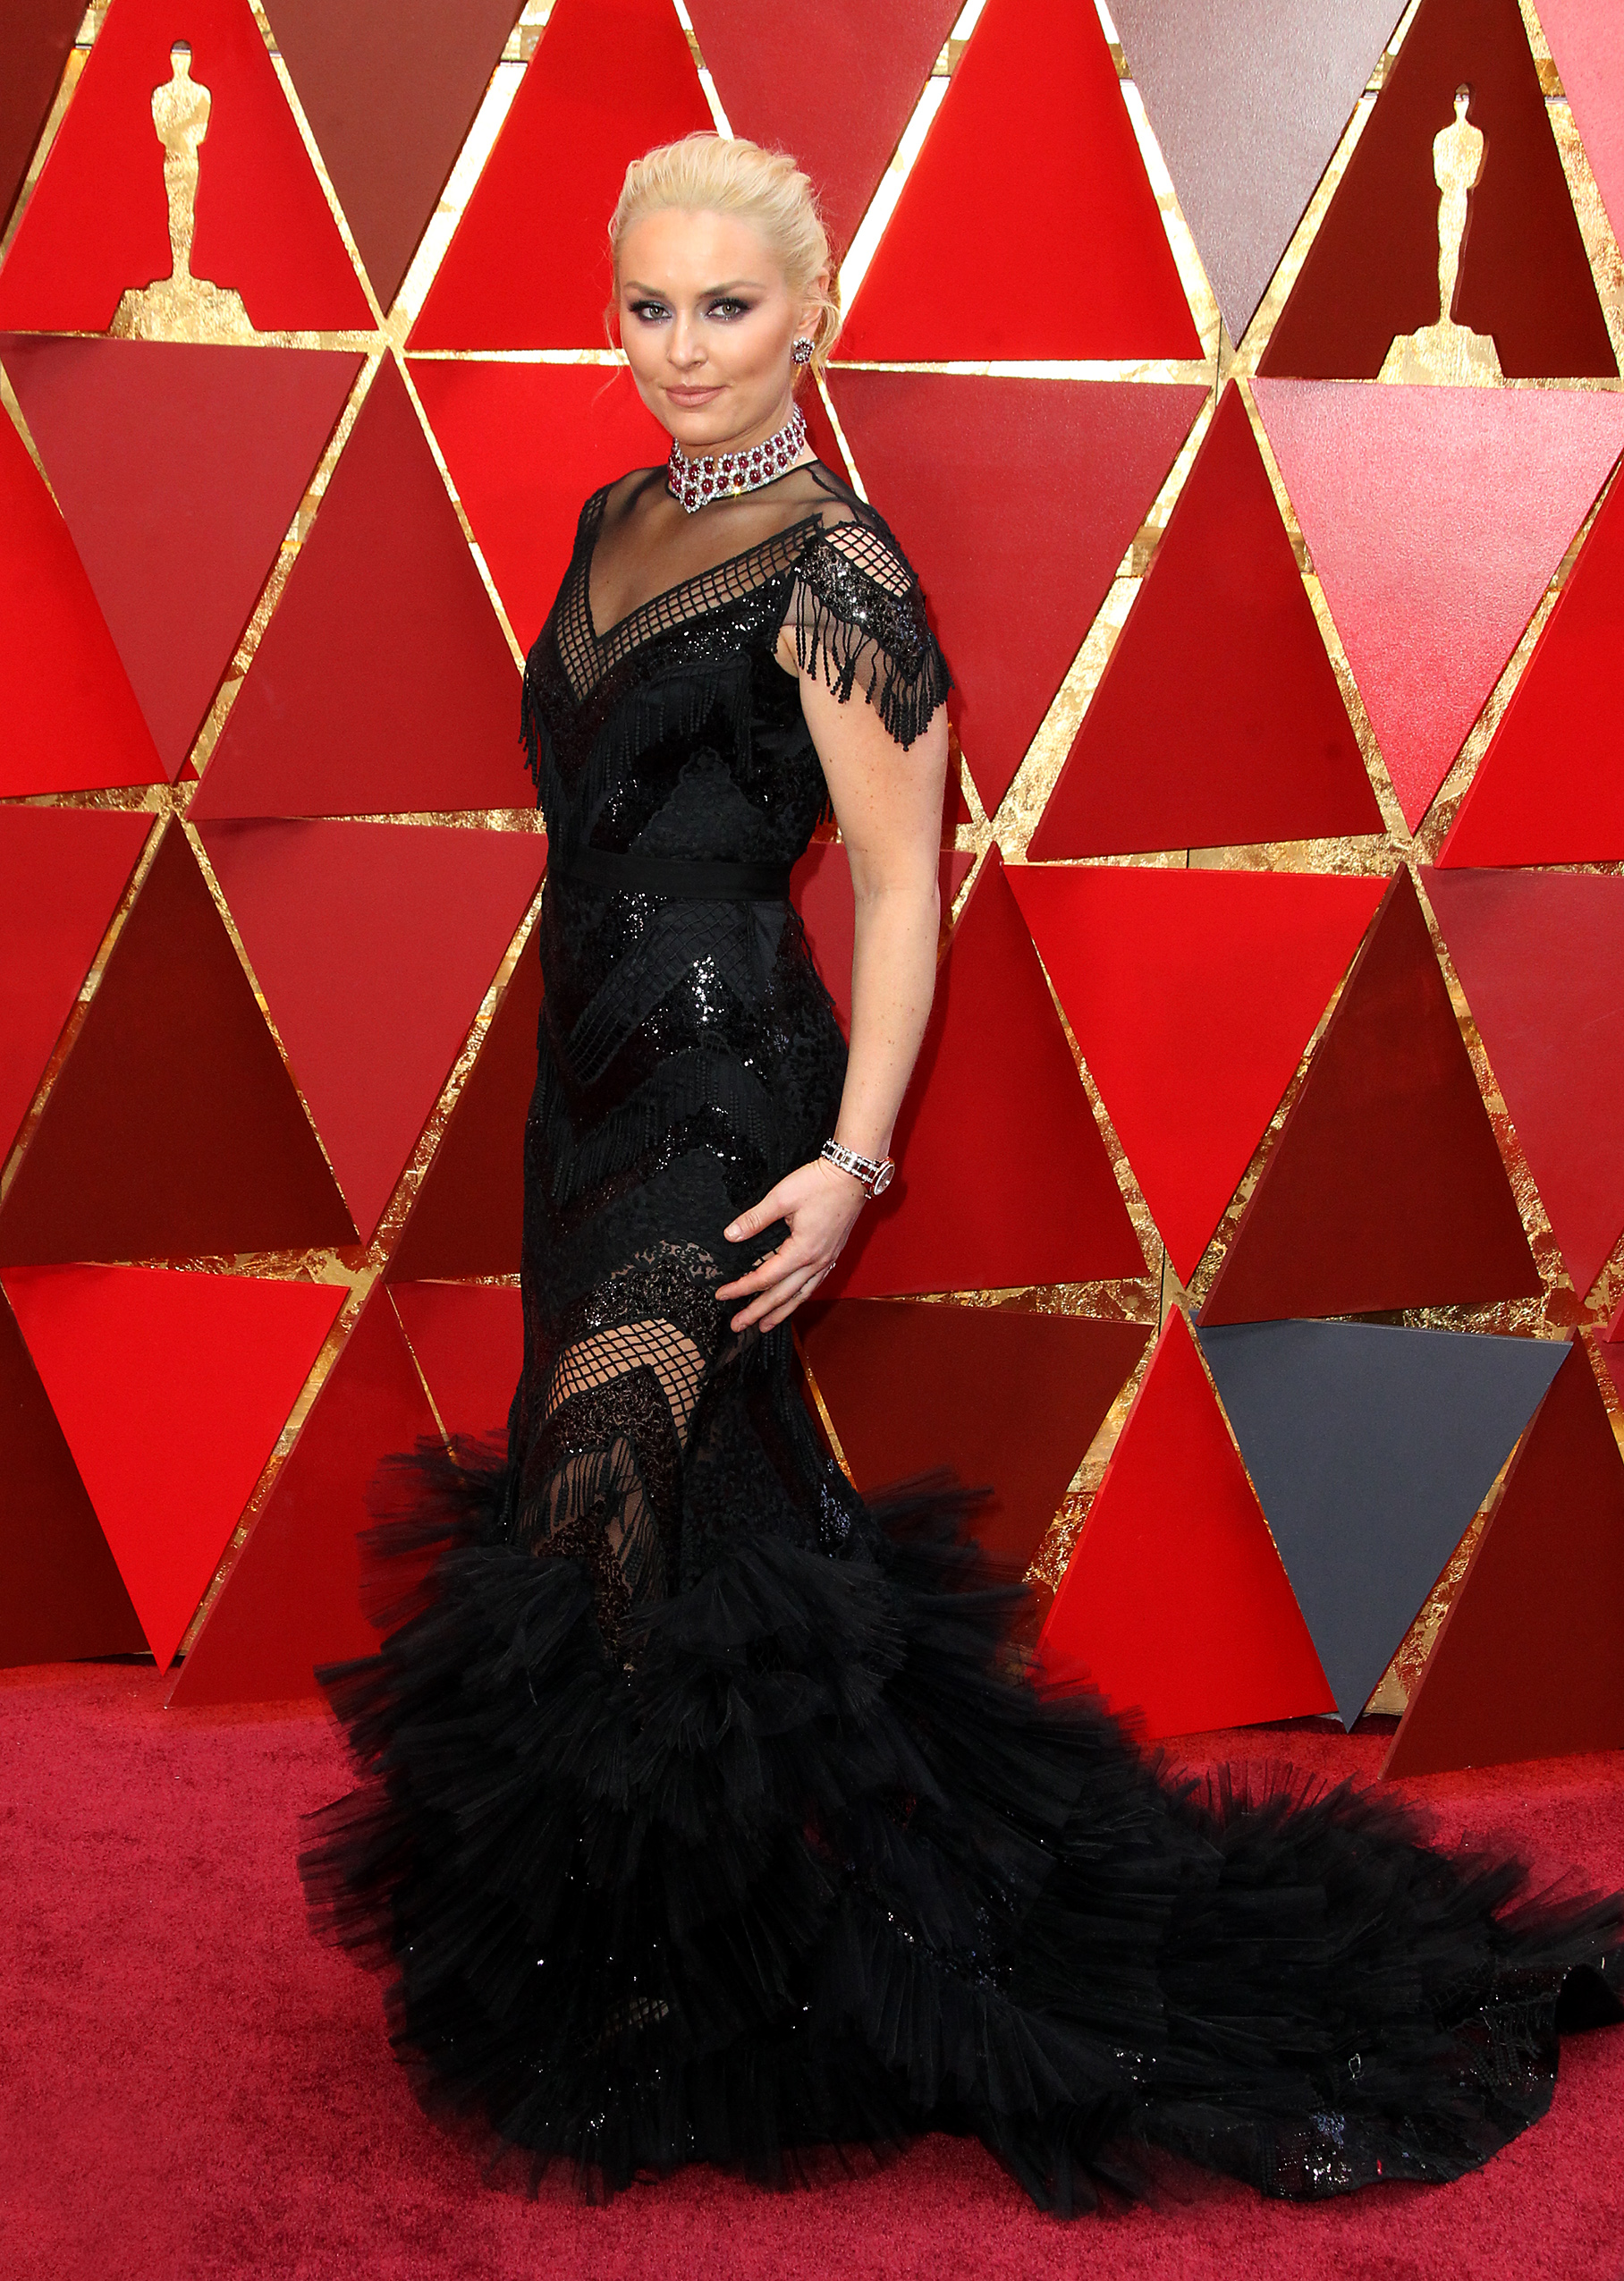 Lindsey Vonnarrives at the 90th Annual Academy Awards (Oscars) held at the Dolby Theater in Hollywood, California. (Image: Adriana M. Barraza/WENN.com)<p></p>